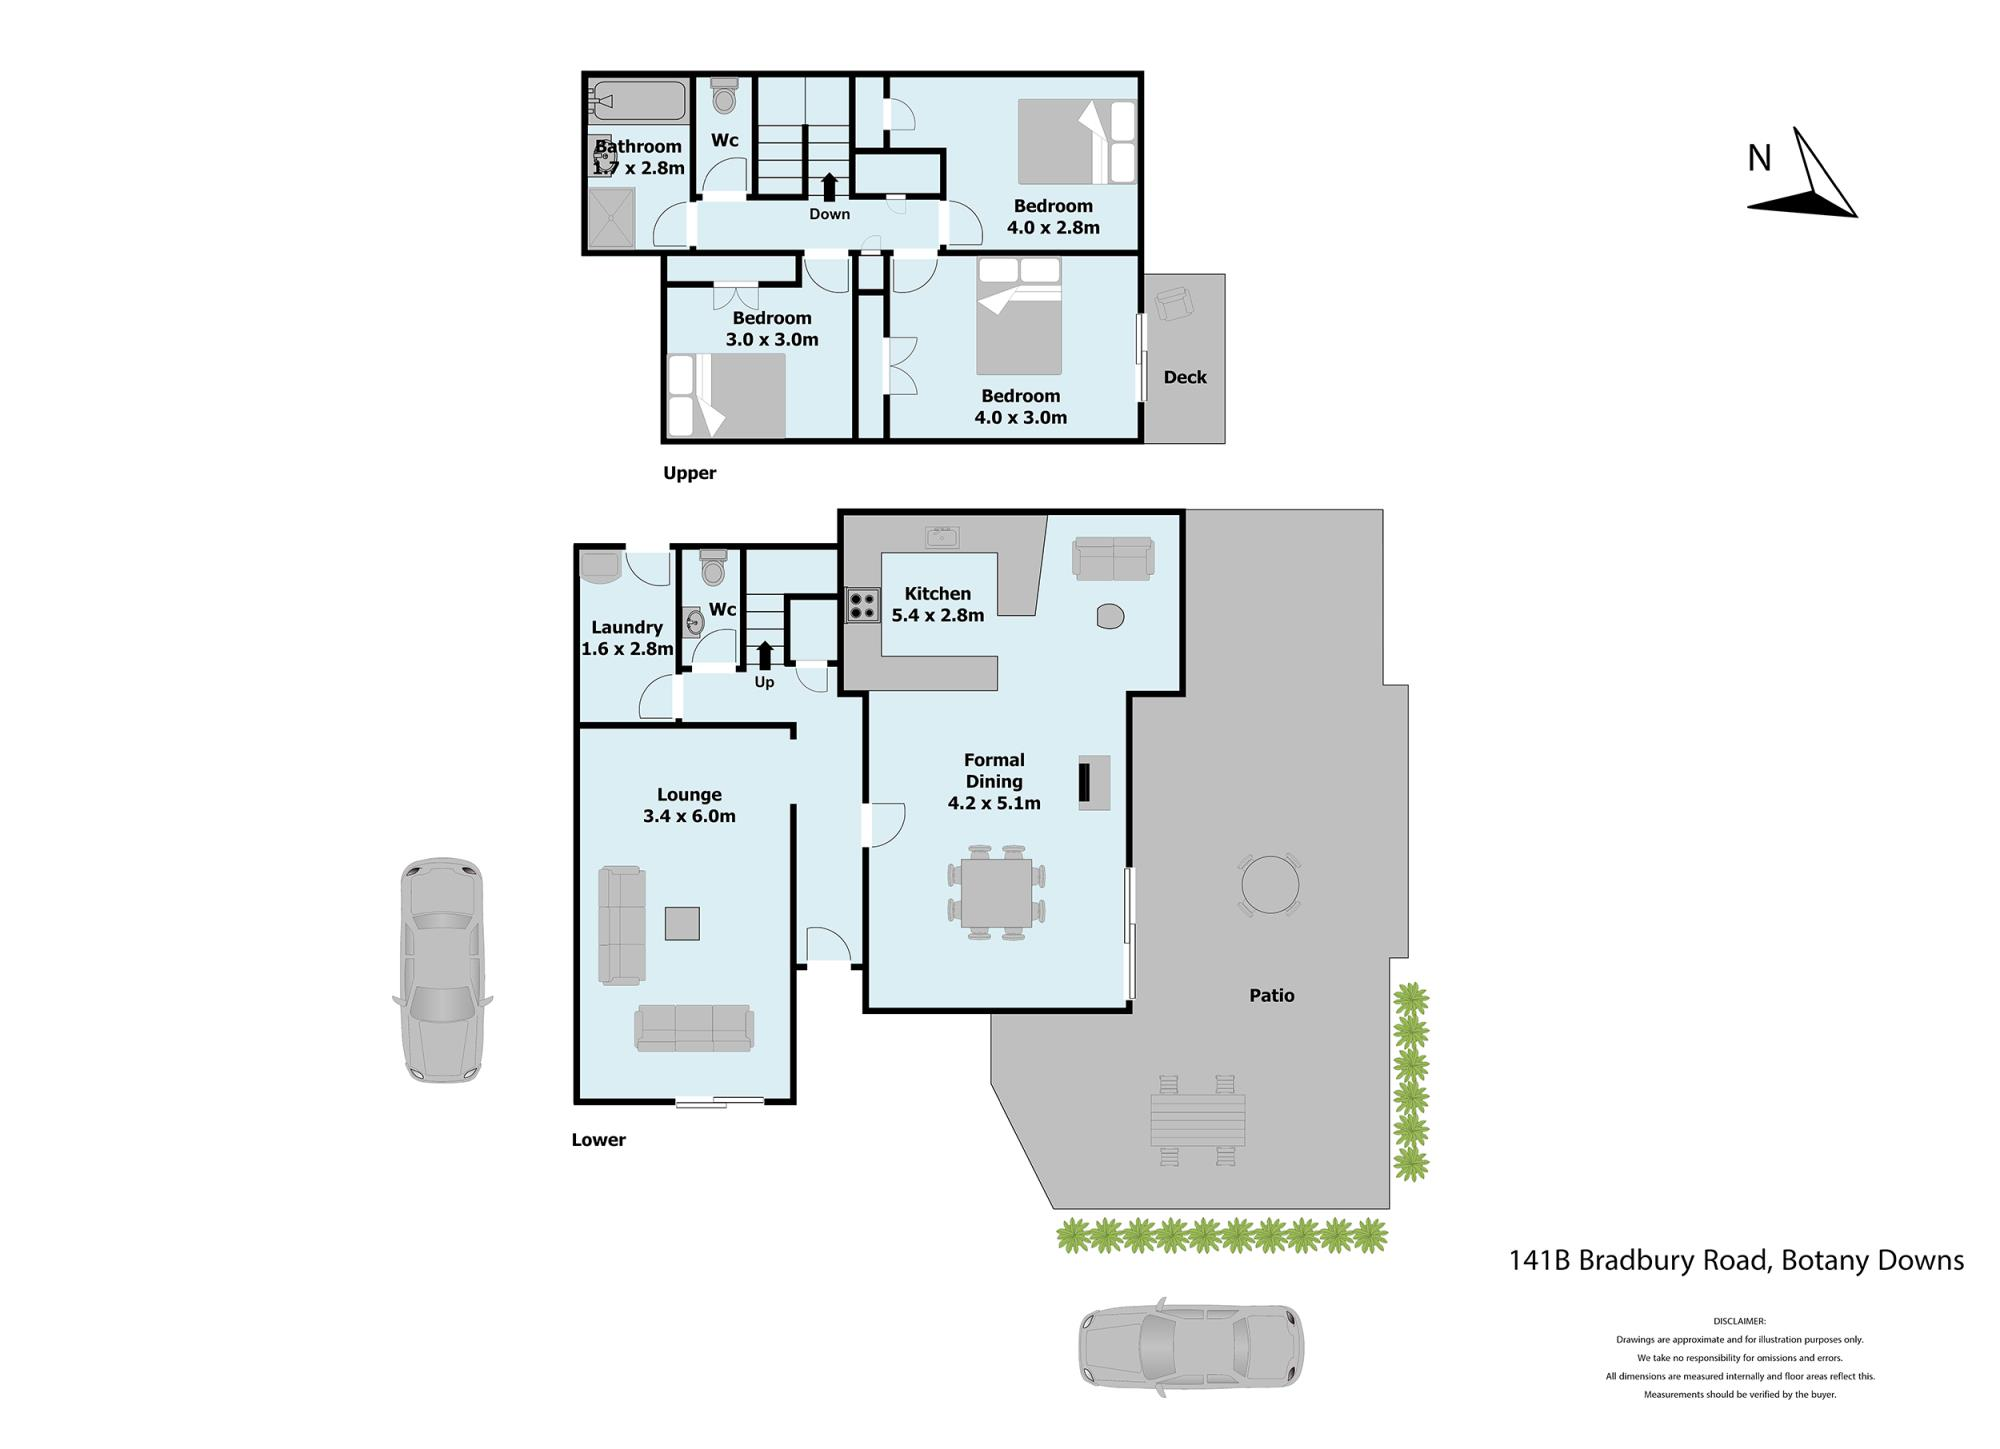 141-B Bradbury Road Botany Downsproperty floorplan image